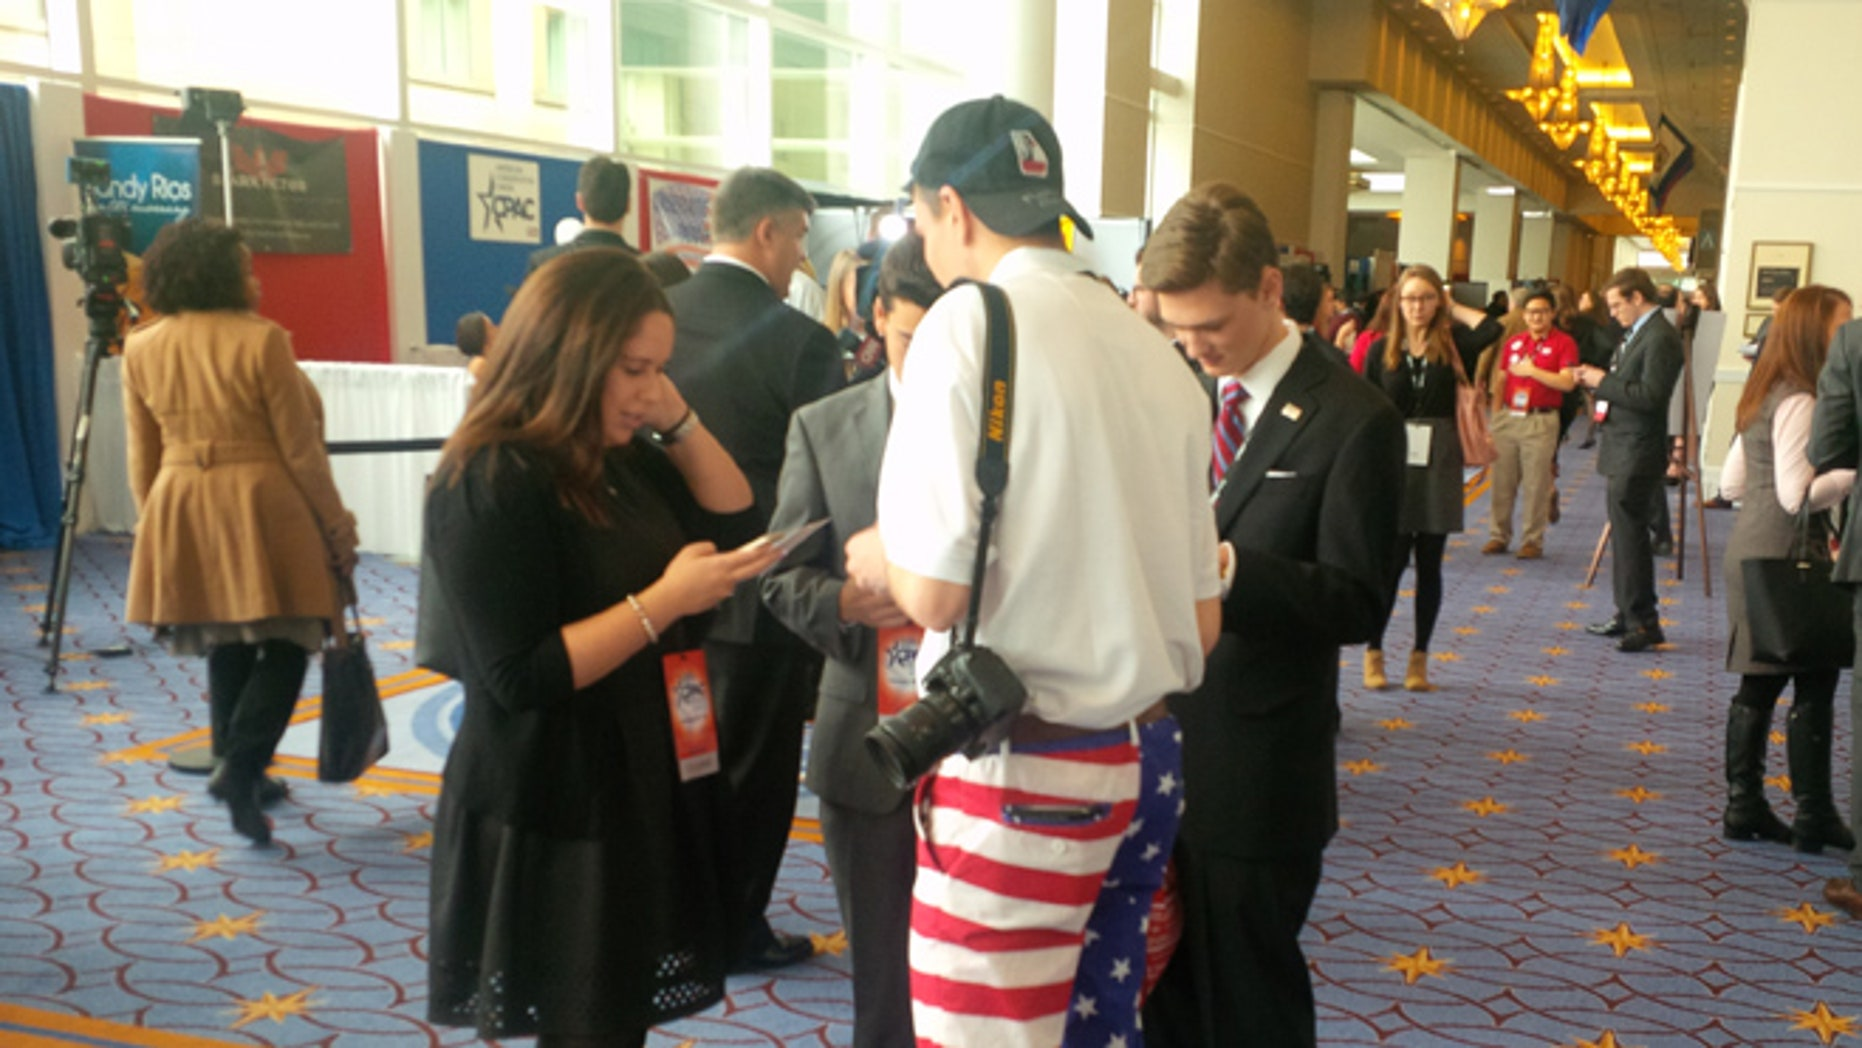 FILE: Feb.25, 2015: This year's CPAC gathering, like others in the past, attracted members of the Tea Party movement. Oxon Hill, Md.